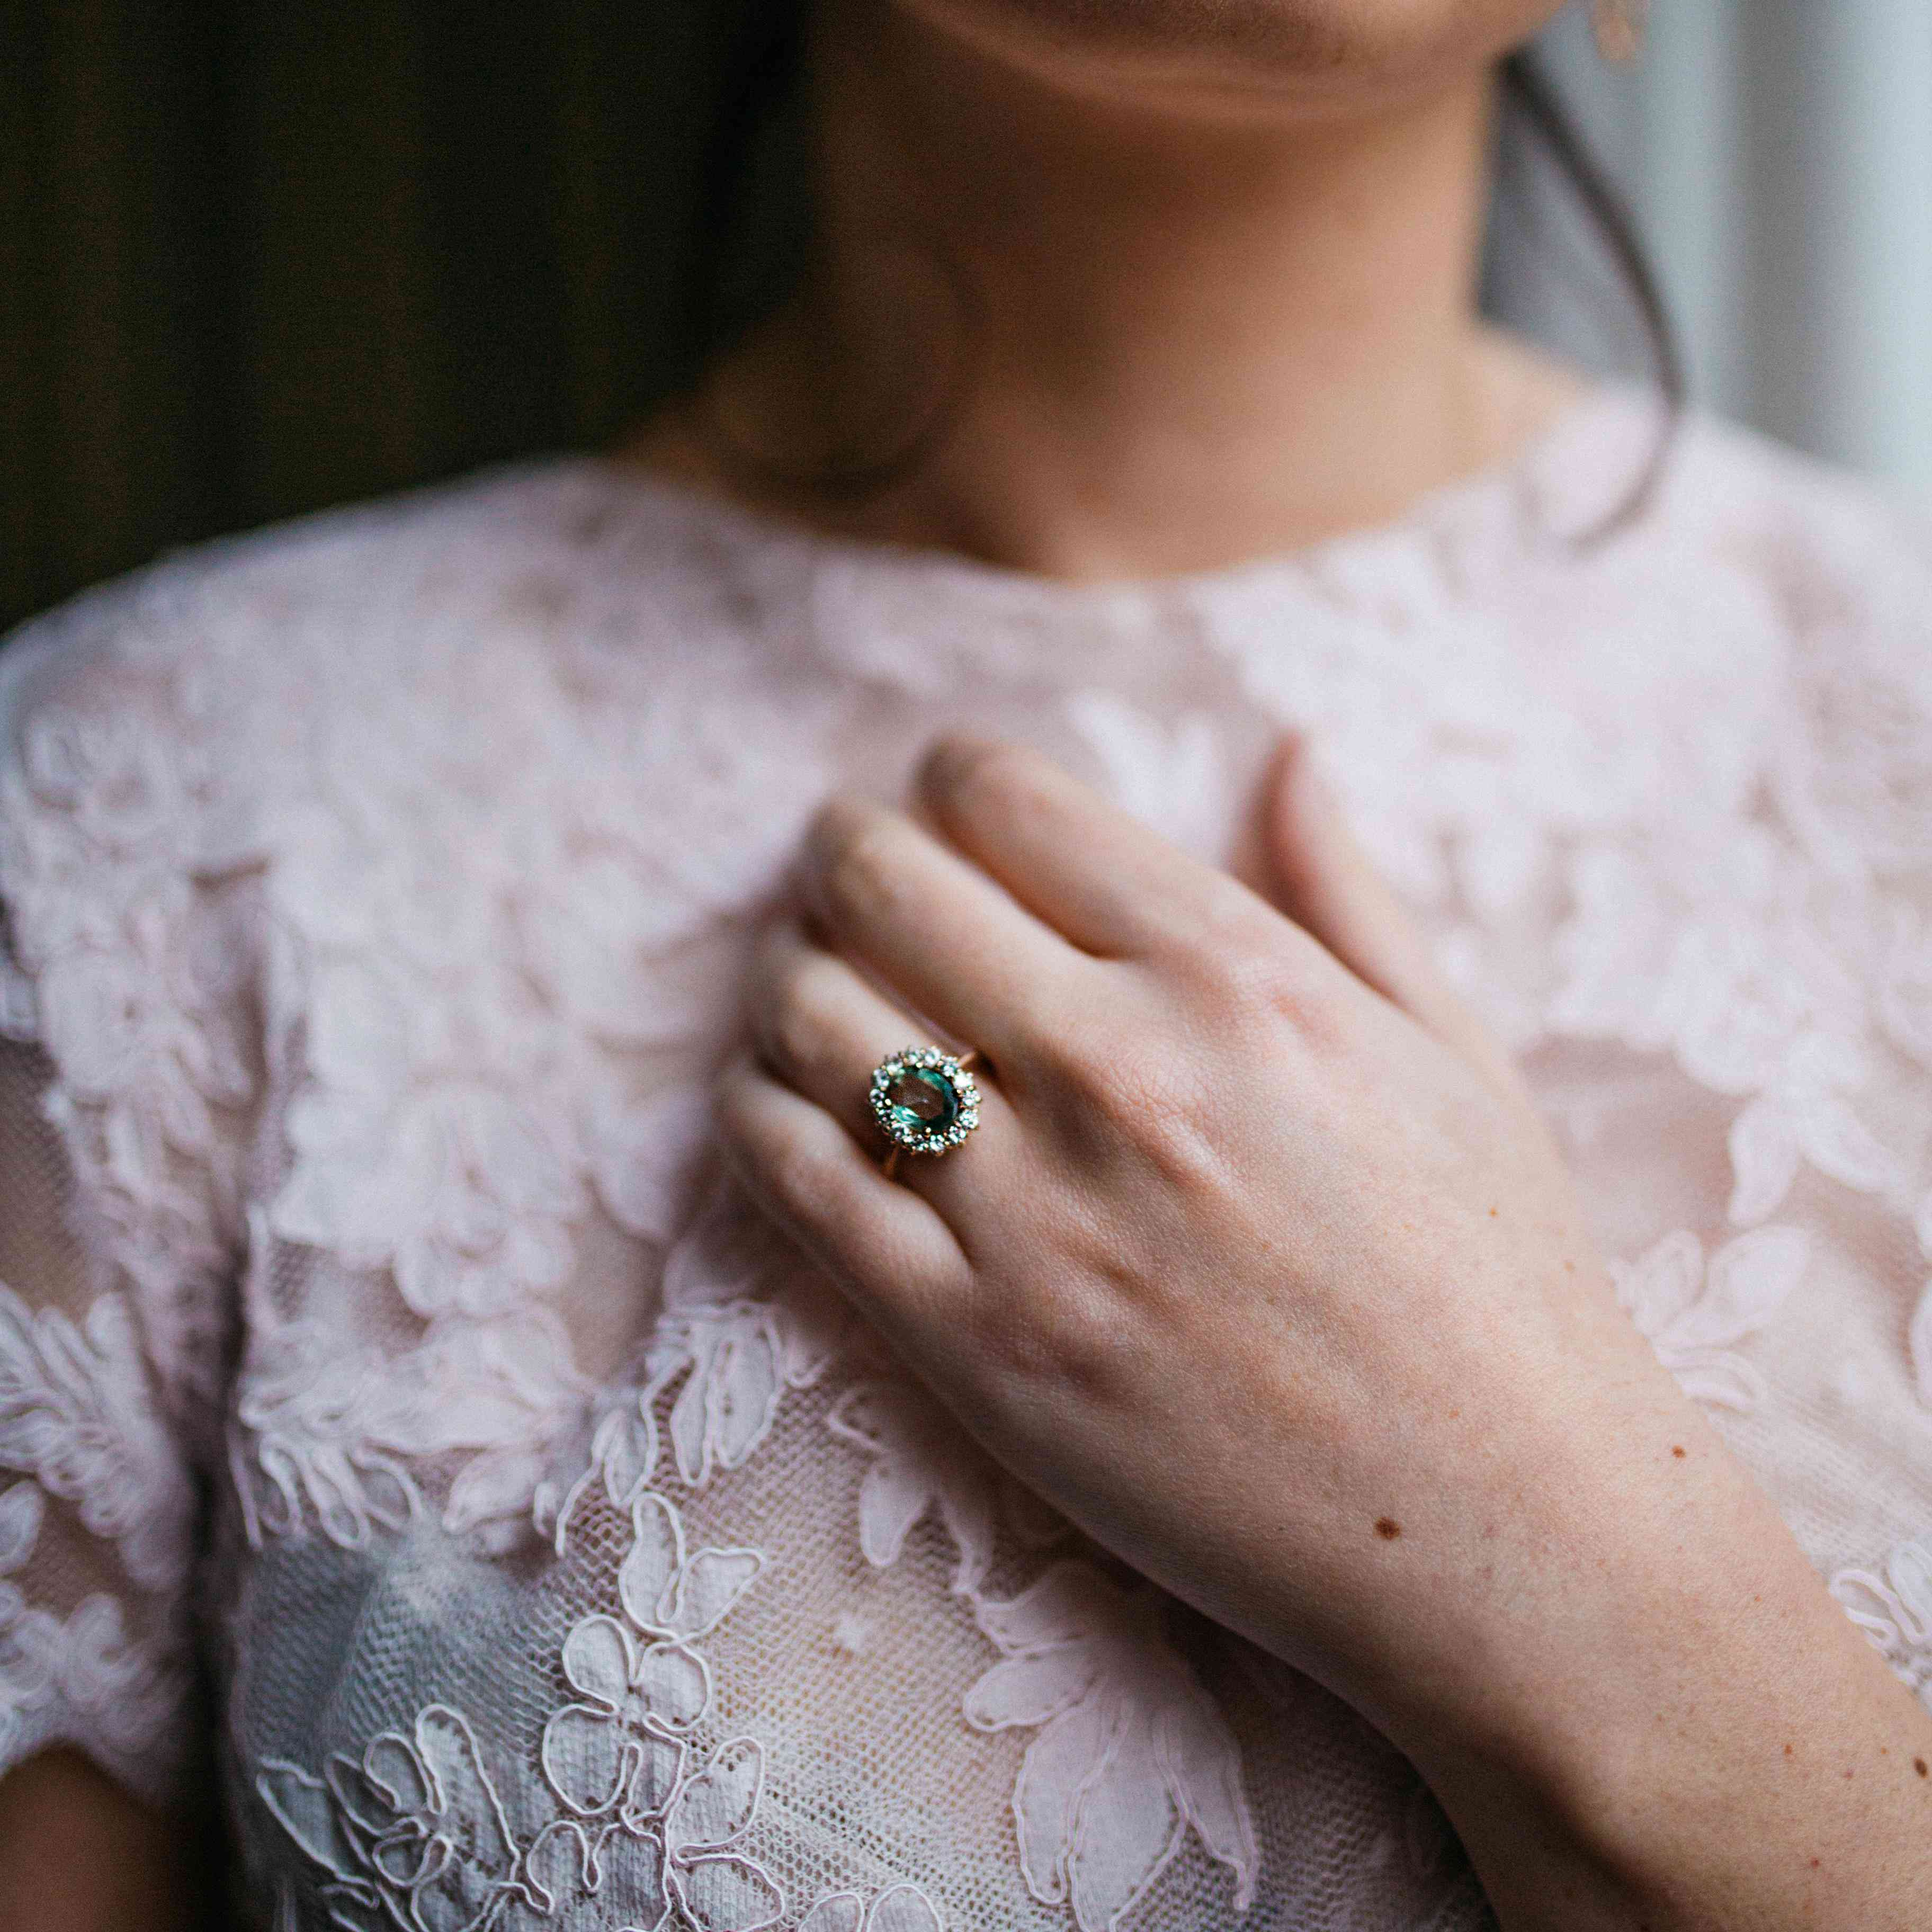 54 Engagement Rings With Colored Stones